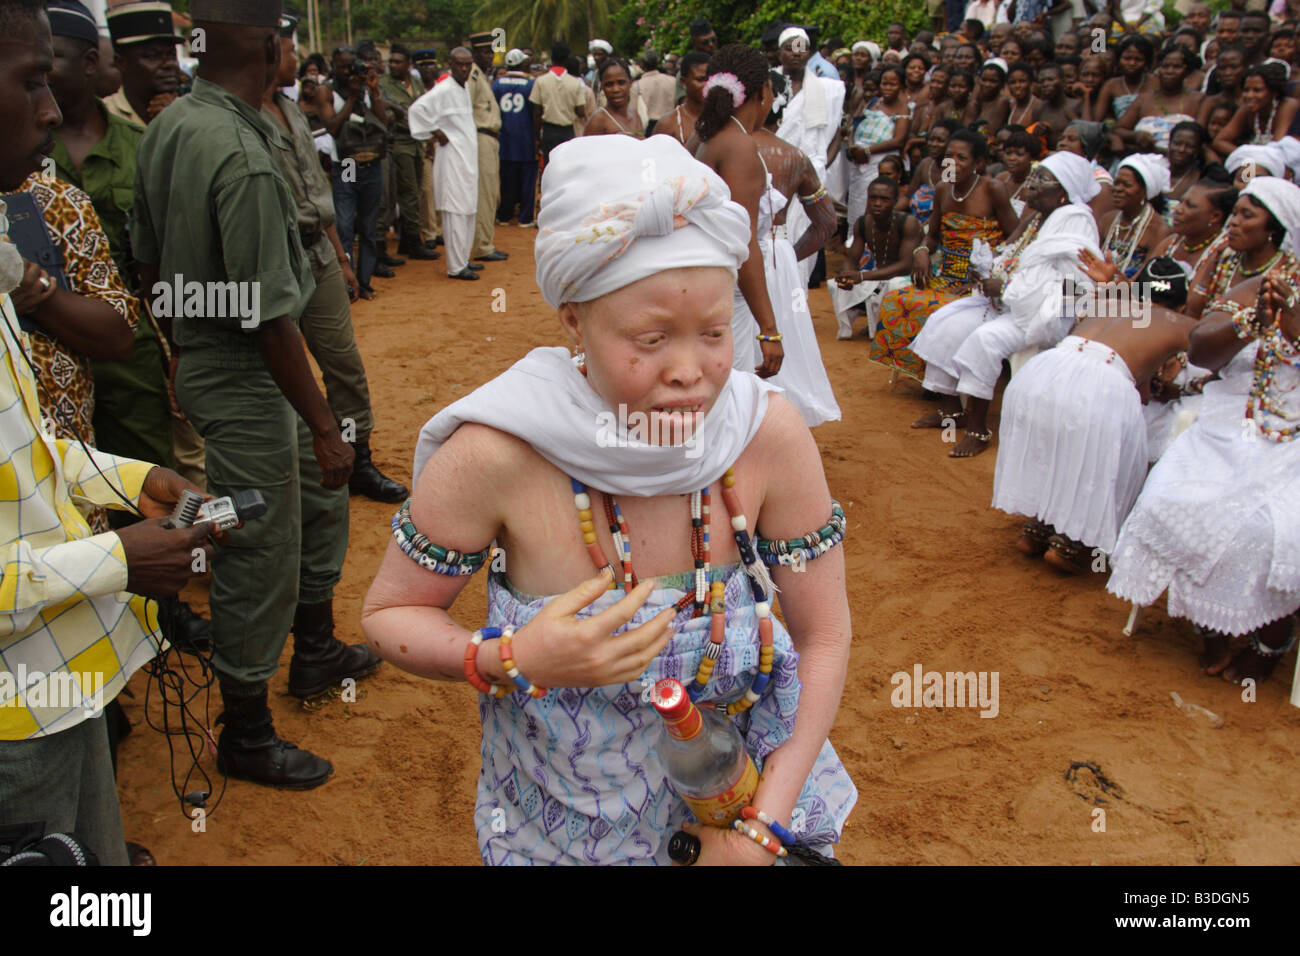 African albino woman during Voodoo ceremony in Aneho, Togo. - Stock Image